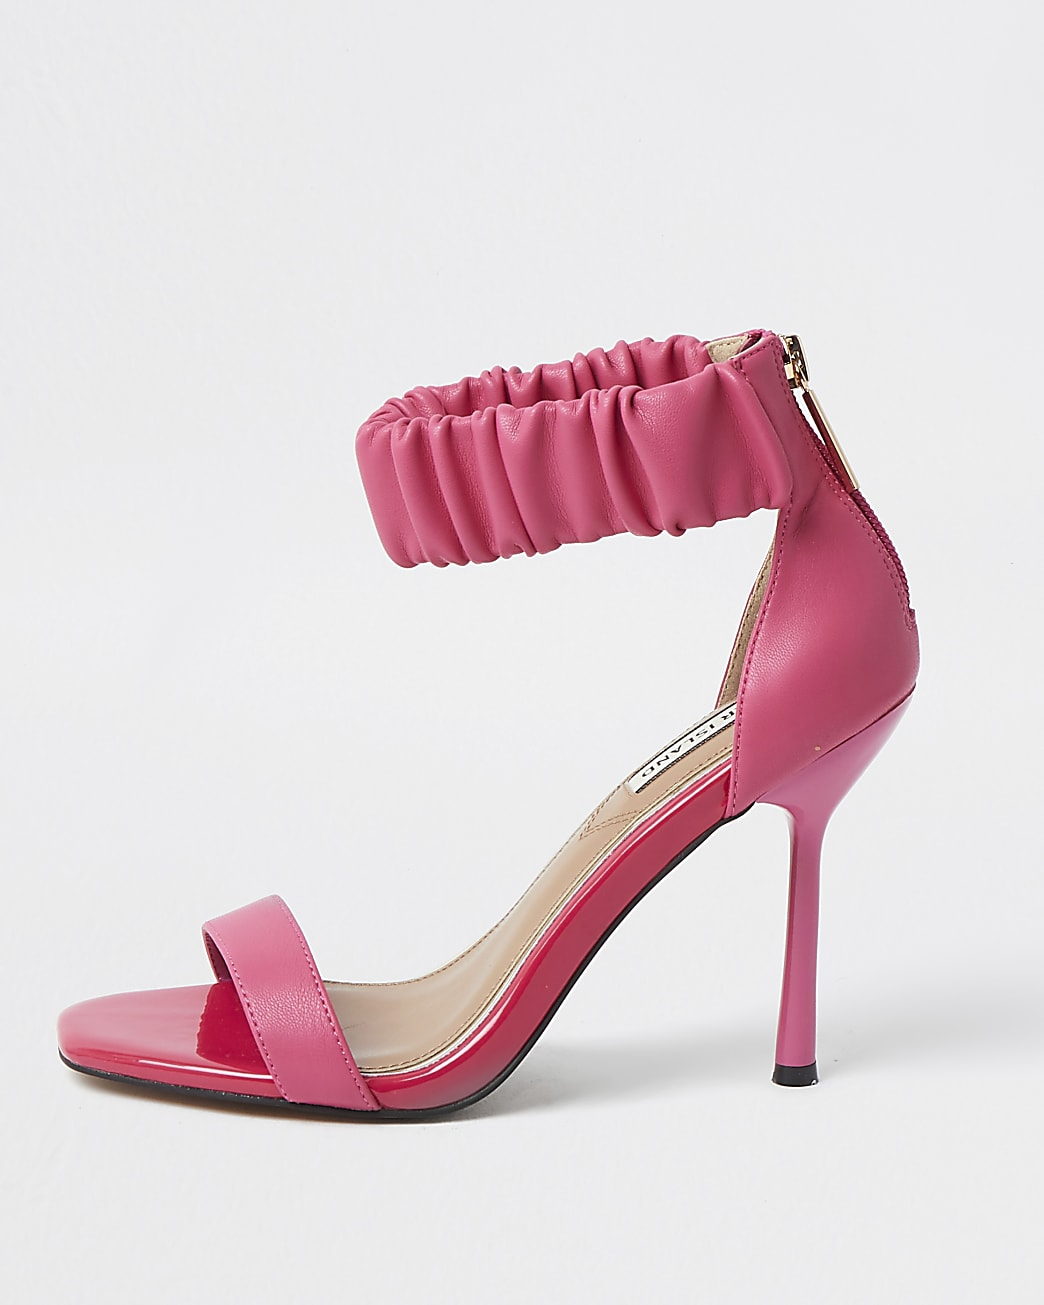 Pink barely there sandal